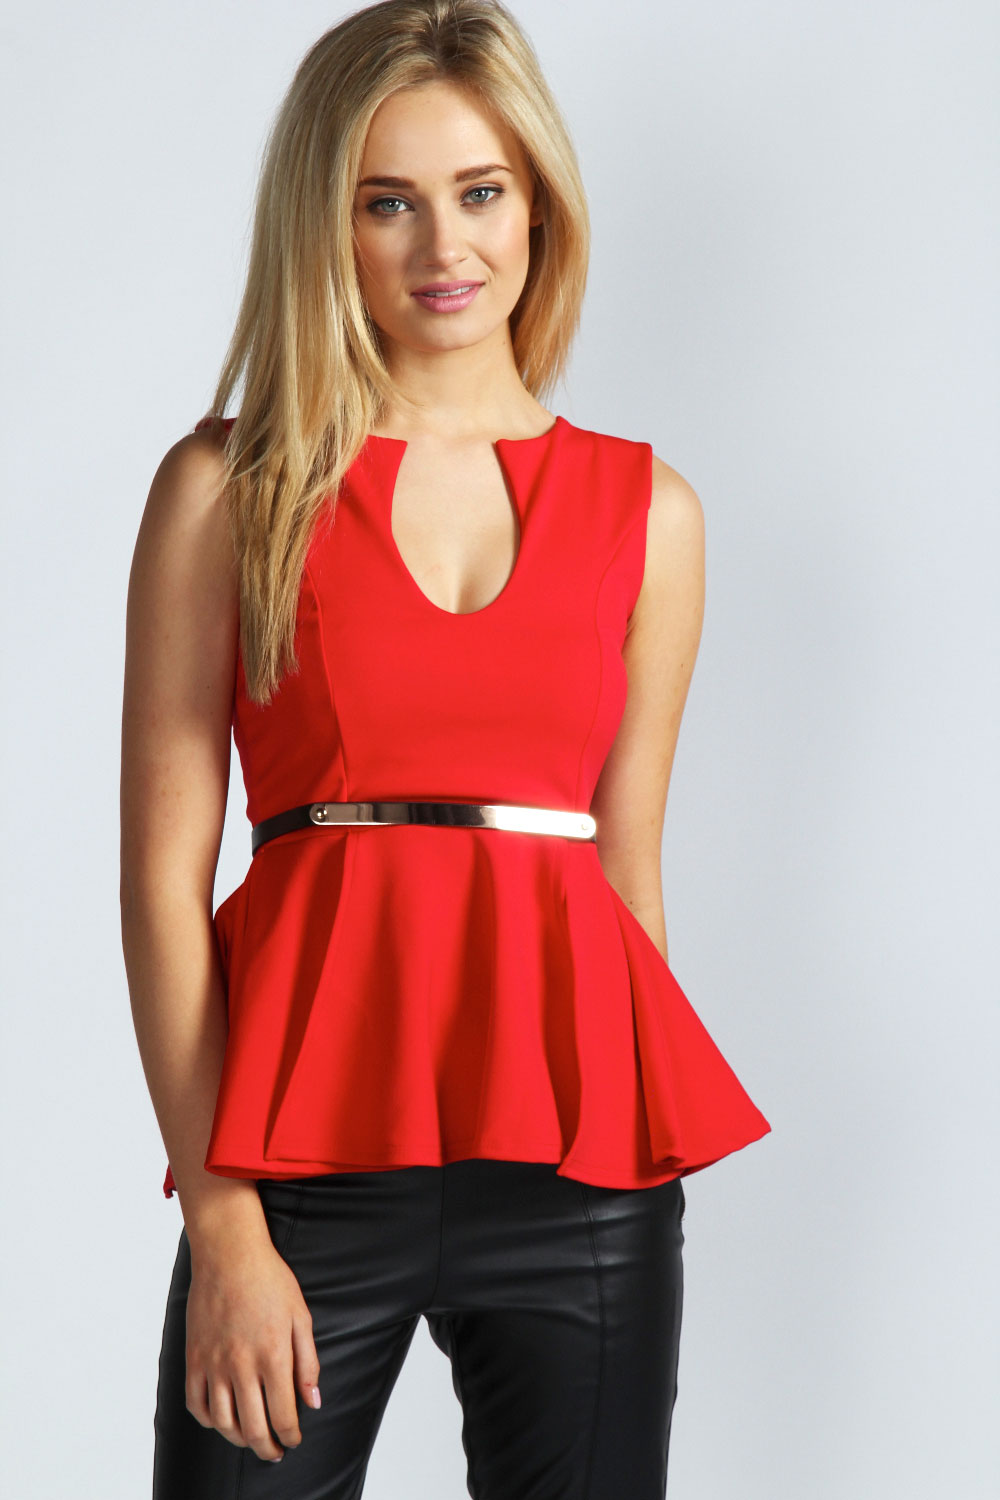 Peplum tops are a great innovation in woman's clothing as we know it. Every woman has a fat day, or an off day when that body confident feeling doesn't come naturally and a simple look into the mirror can have you feeling like a fashion flaw, rather than a fashion hit!